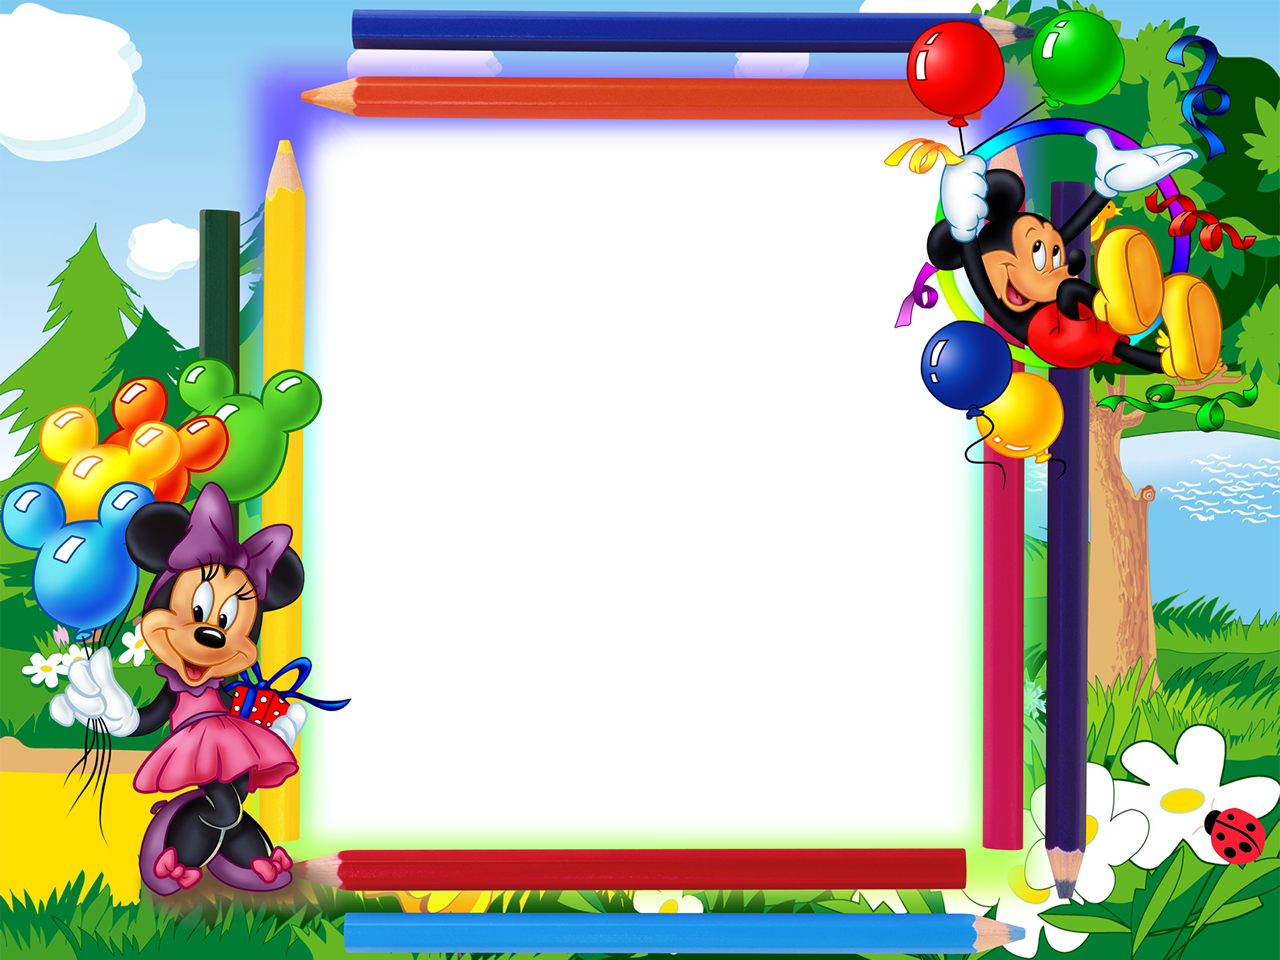 Image Detail For Minnie And Mickey Wallpapers Real Madrid